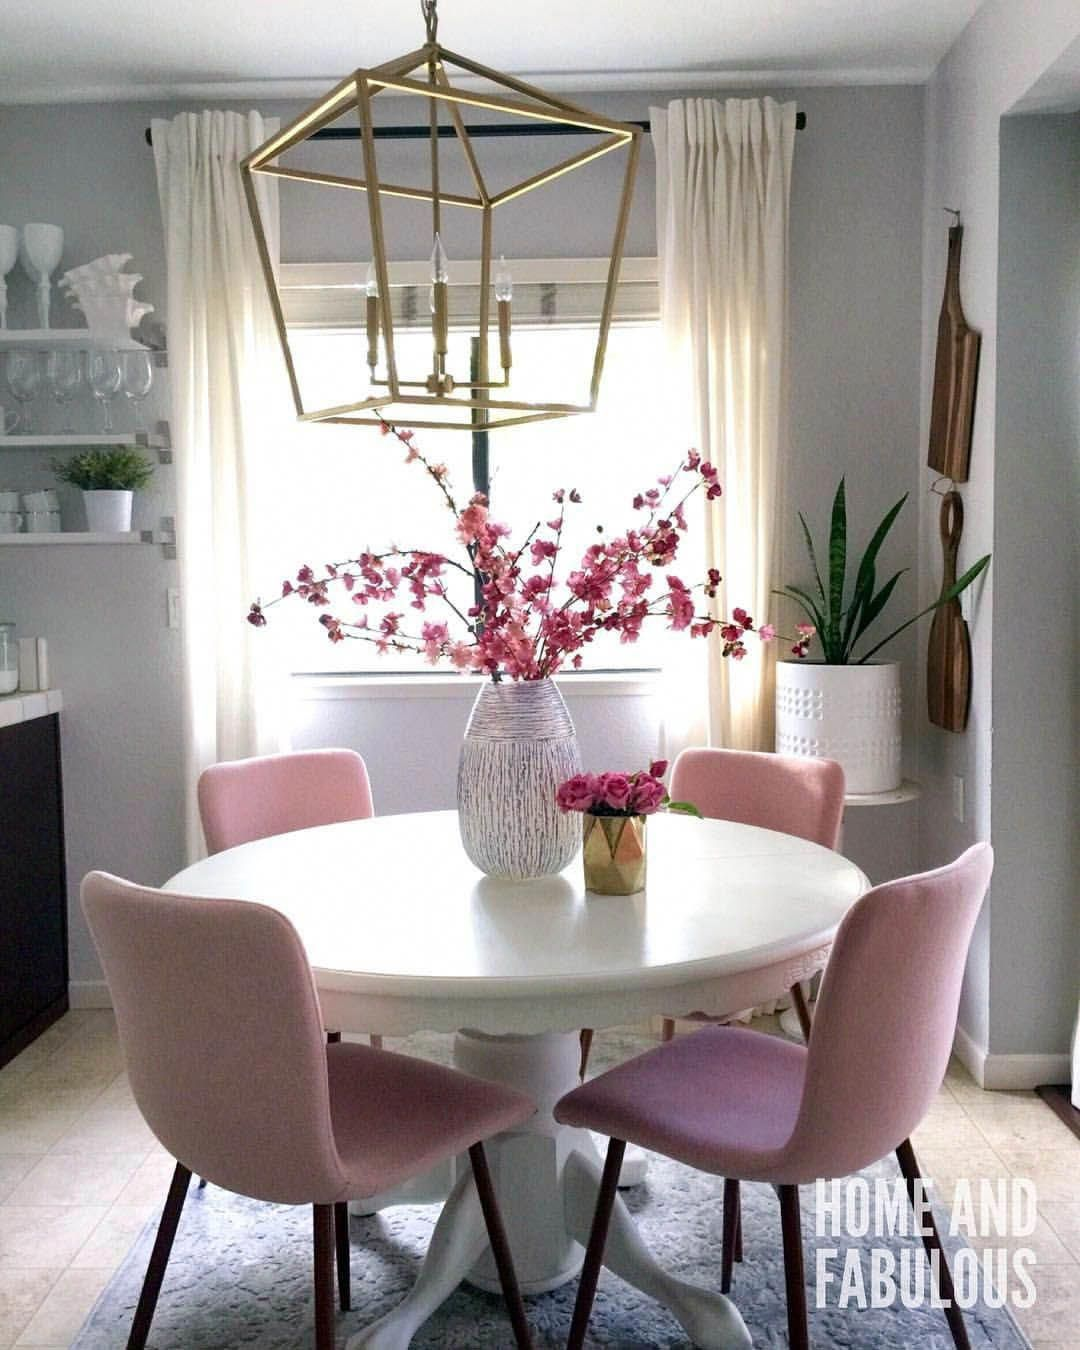 Good Dining Room Chairs Walmart Made Easy Diningroomdecor Dining Room Small Pink Home Decor Home Decor